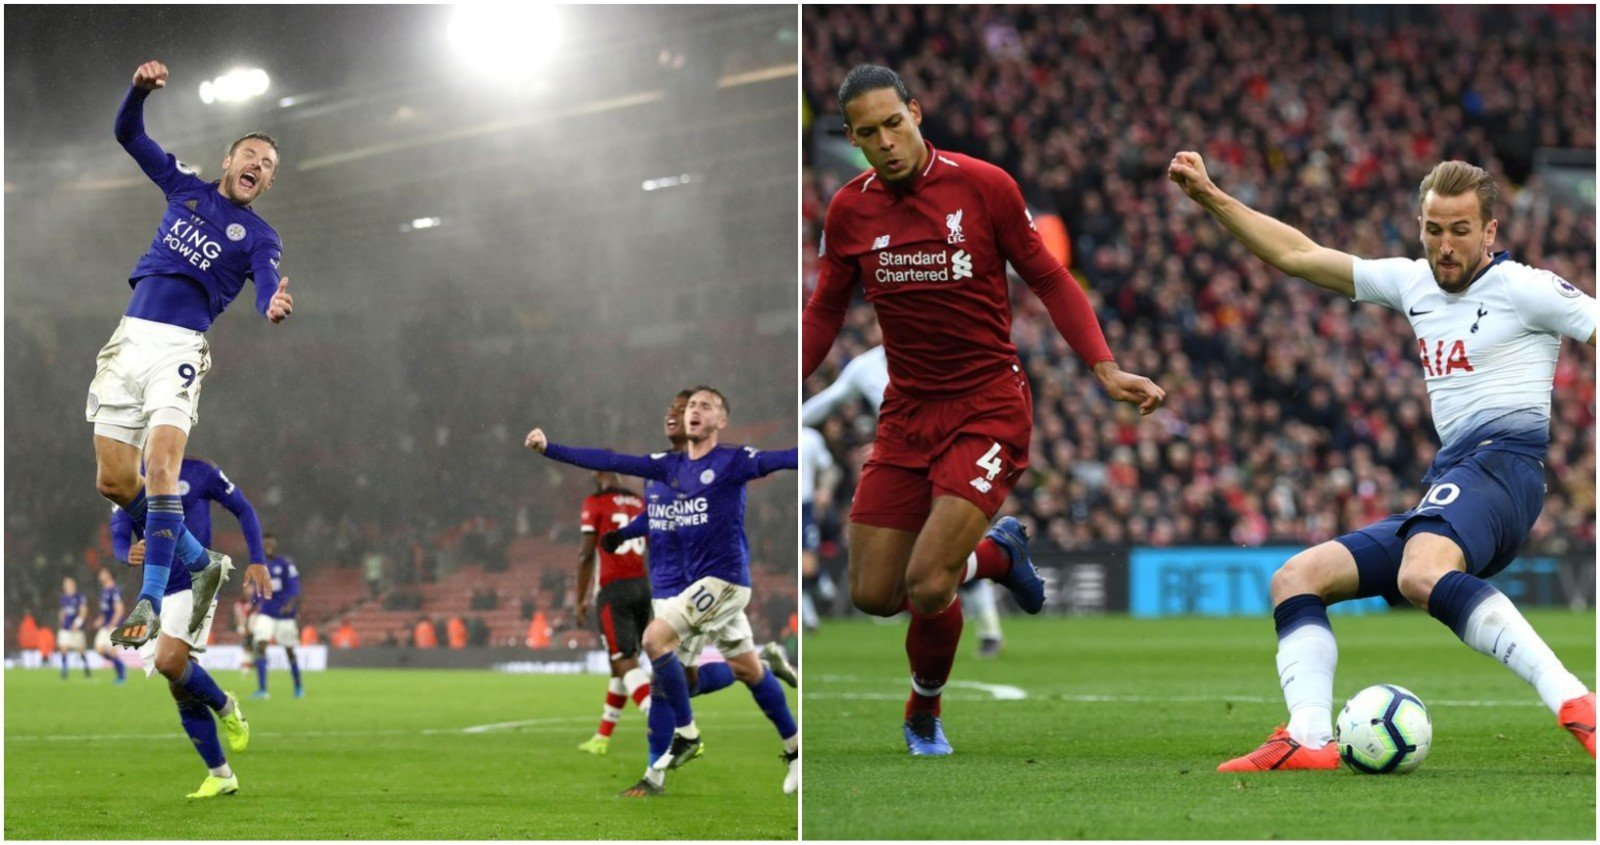 Premier League Matchday 10 Round Up 27.10.2019